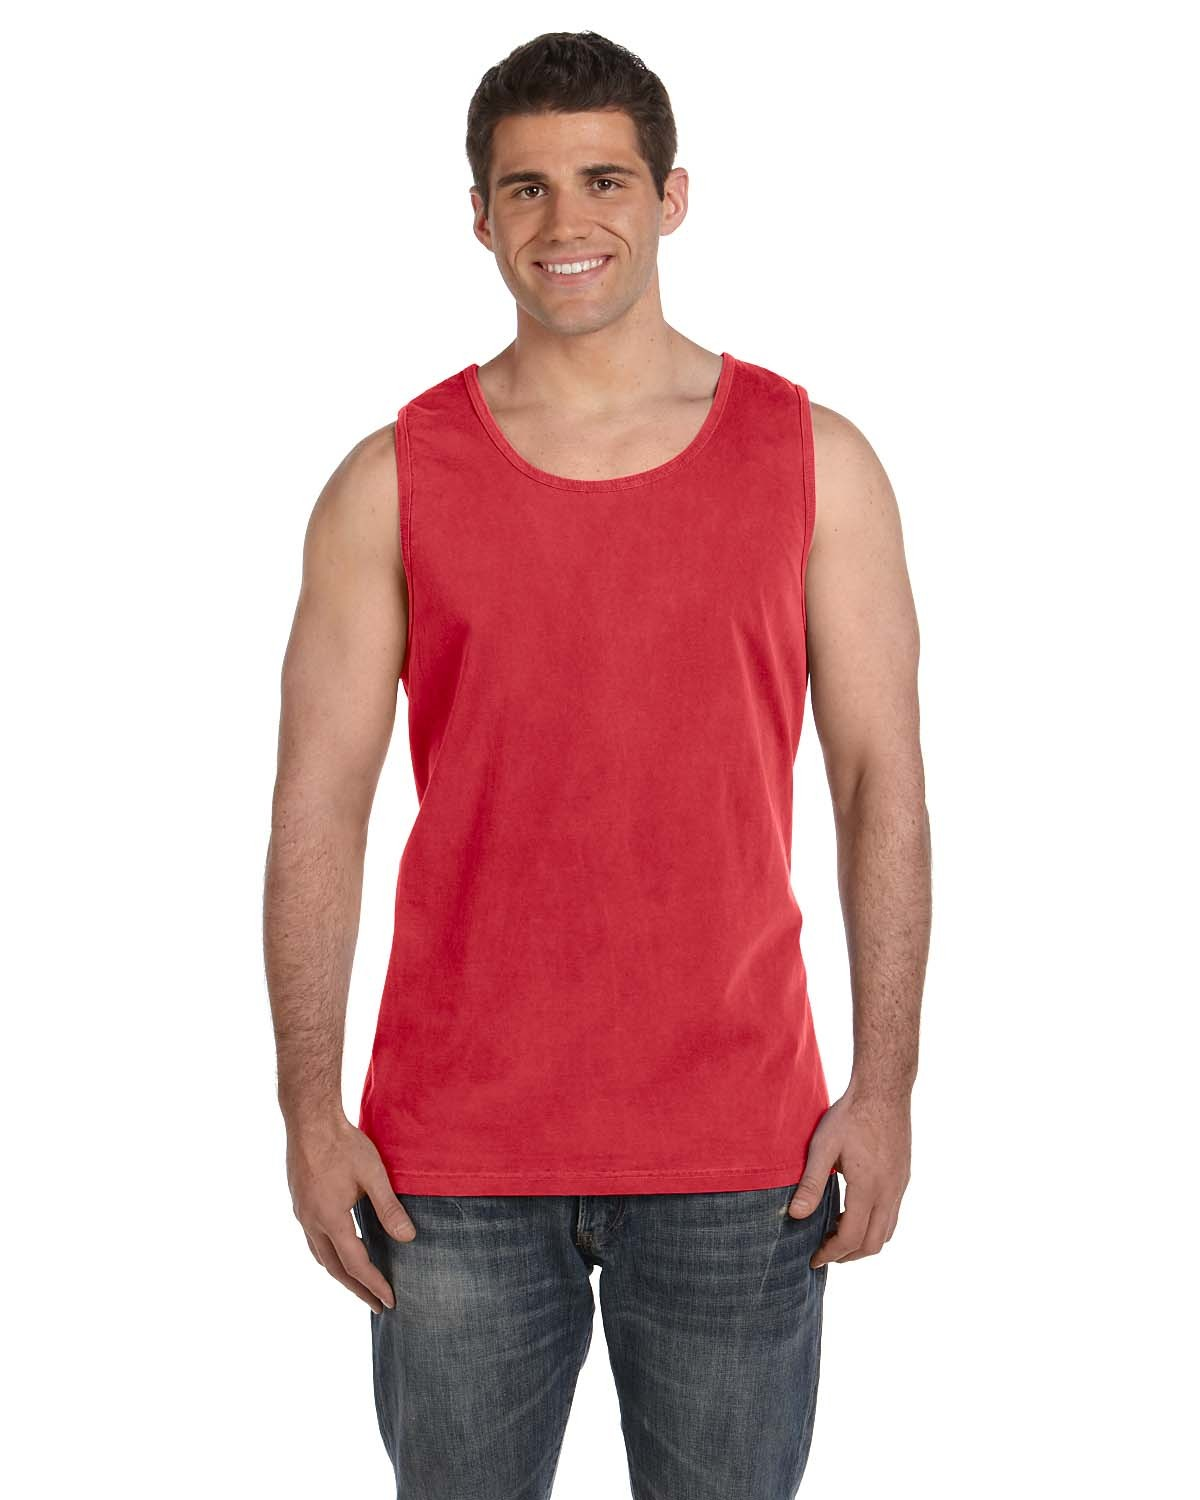 C9360 Comfort Colors RED